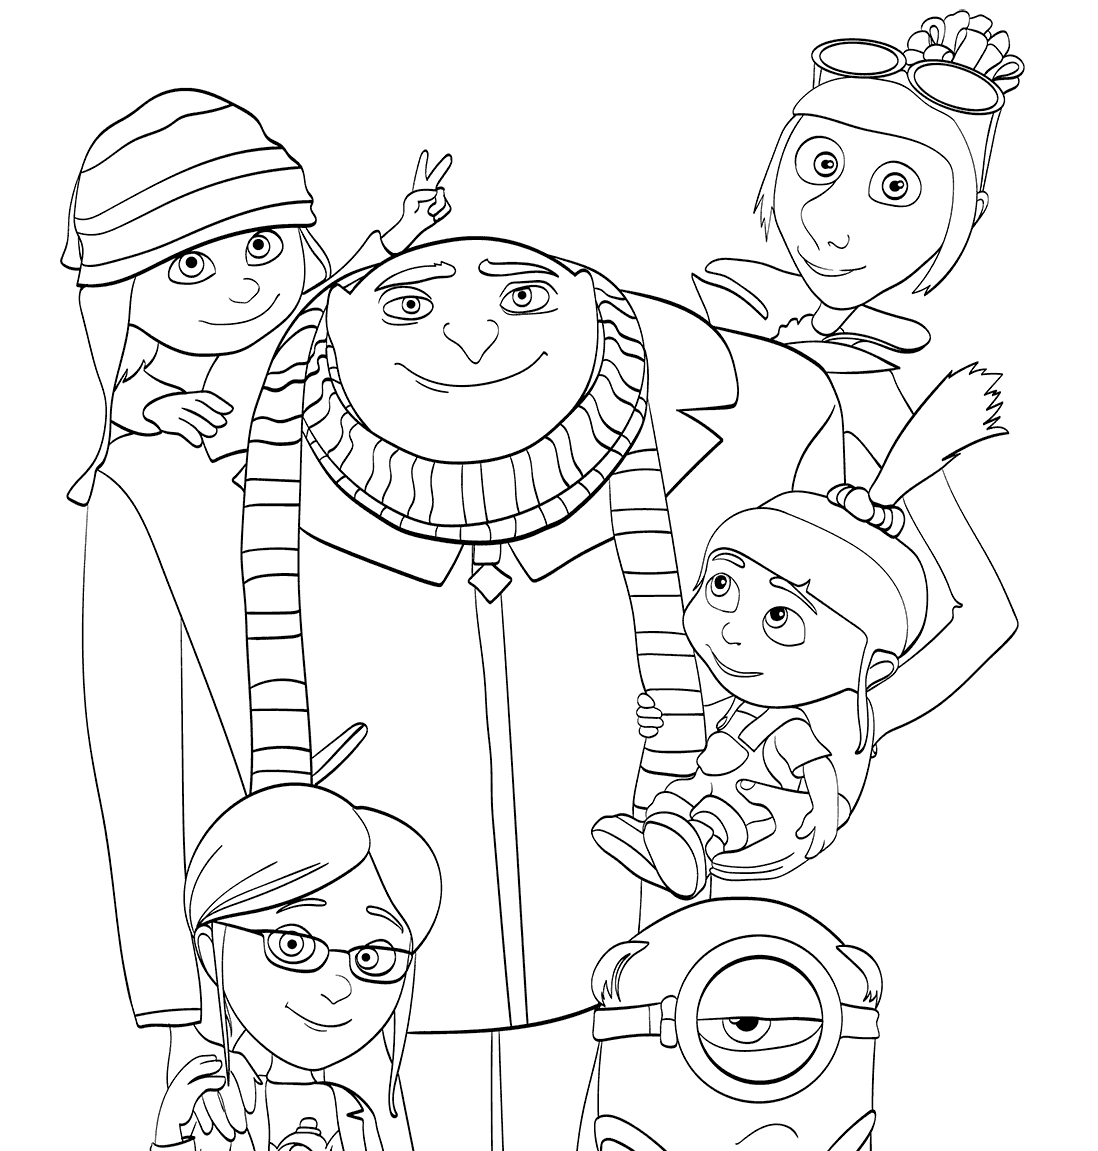 Despicable Me 3 Coloring Pages - Despicable Me 3 Coloring Pages to and Print for Free